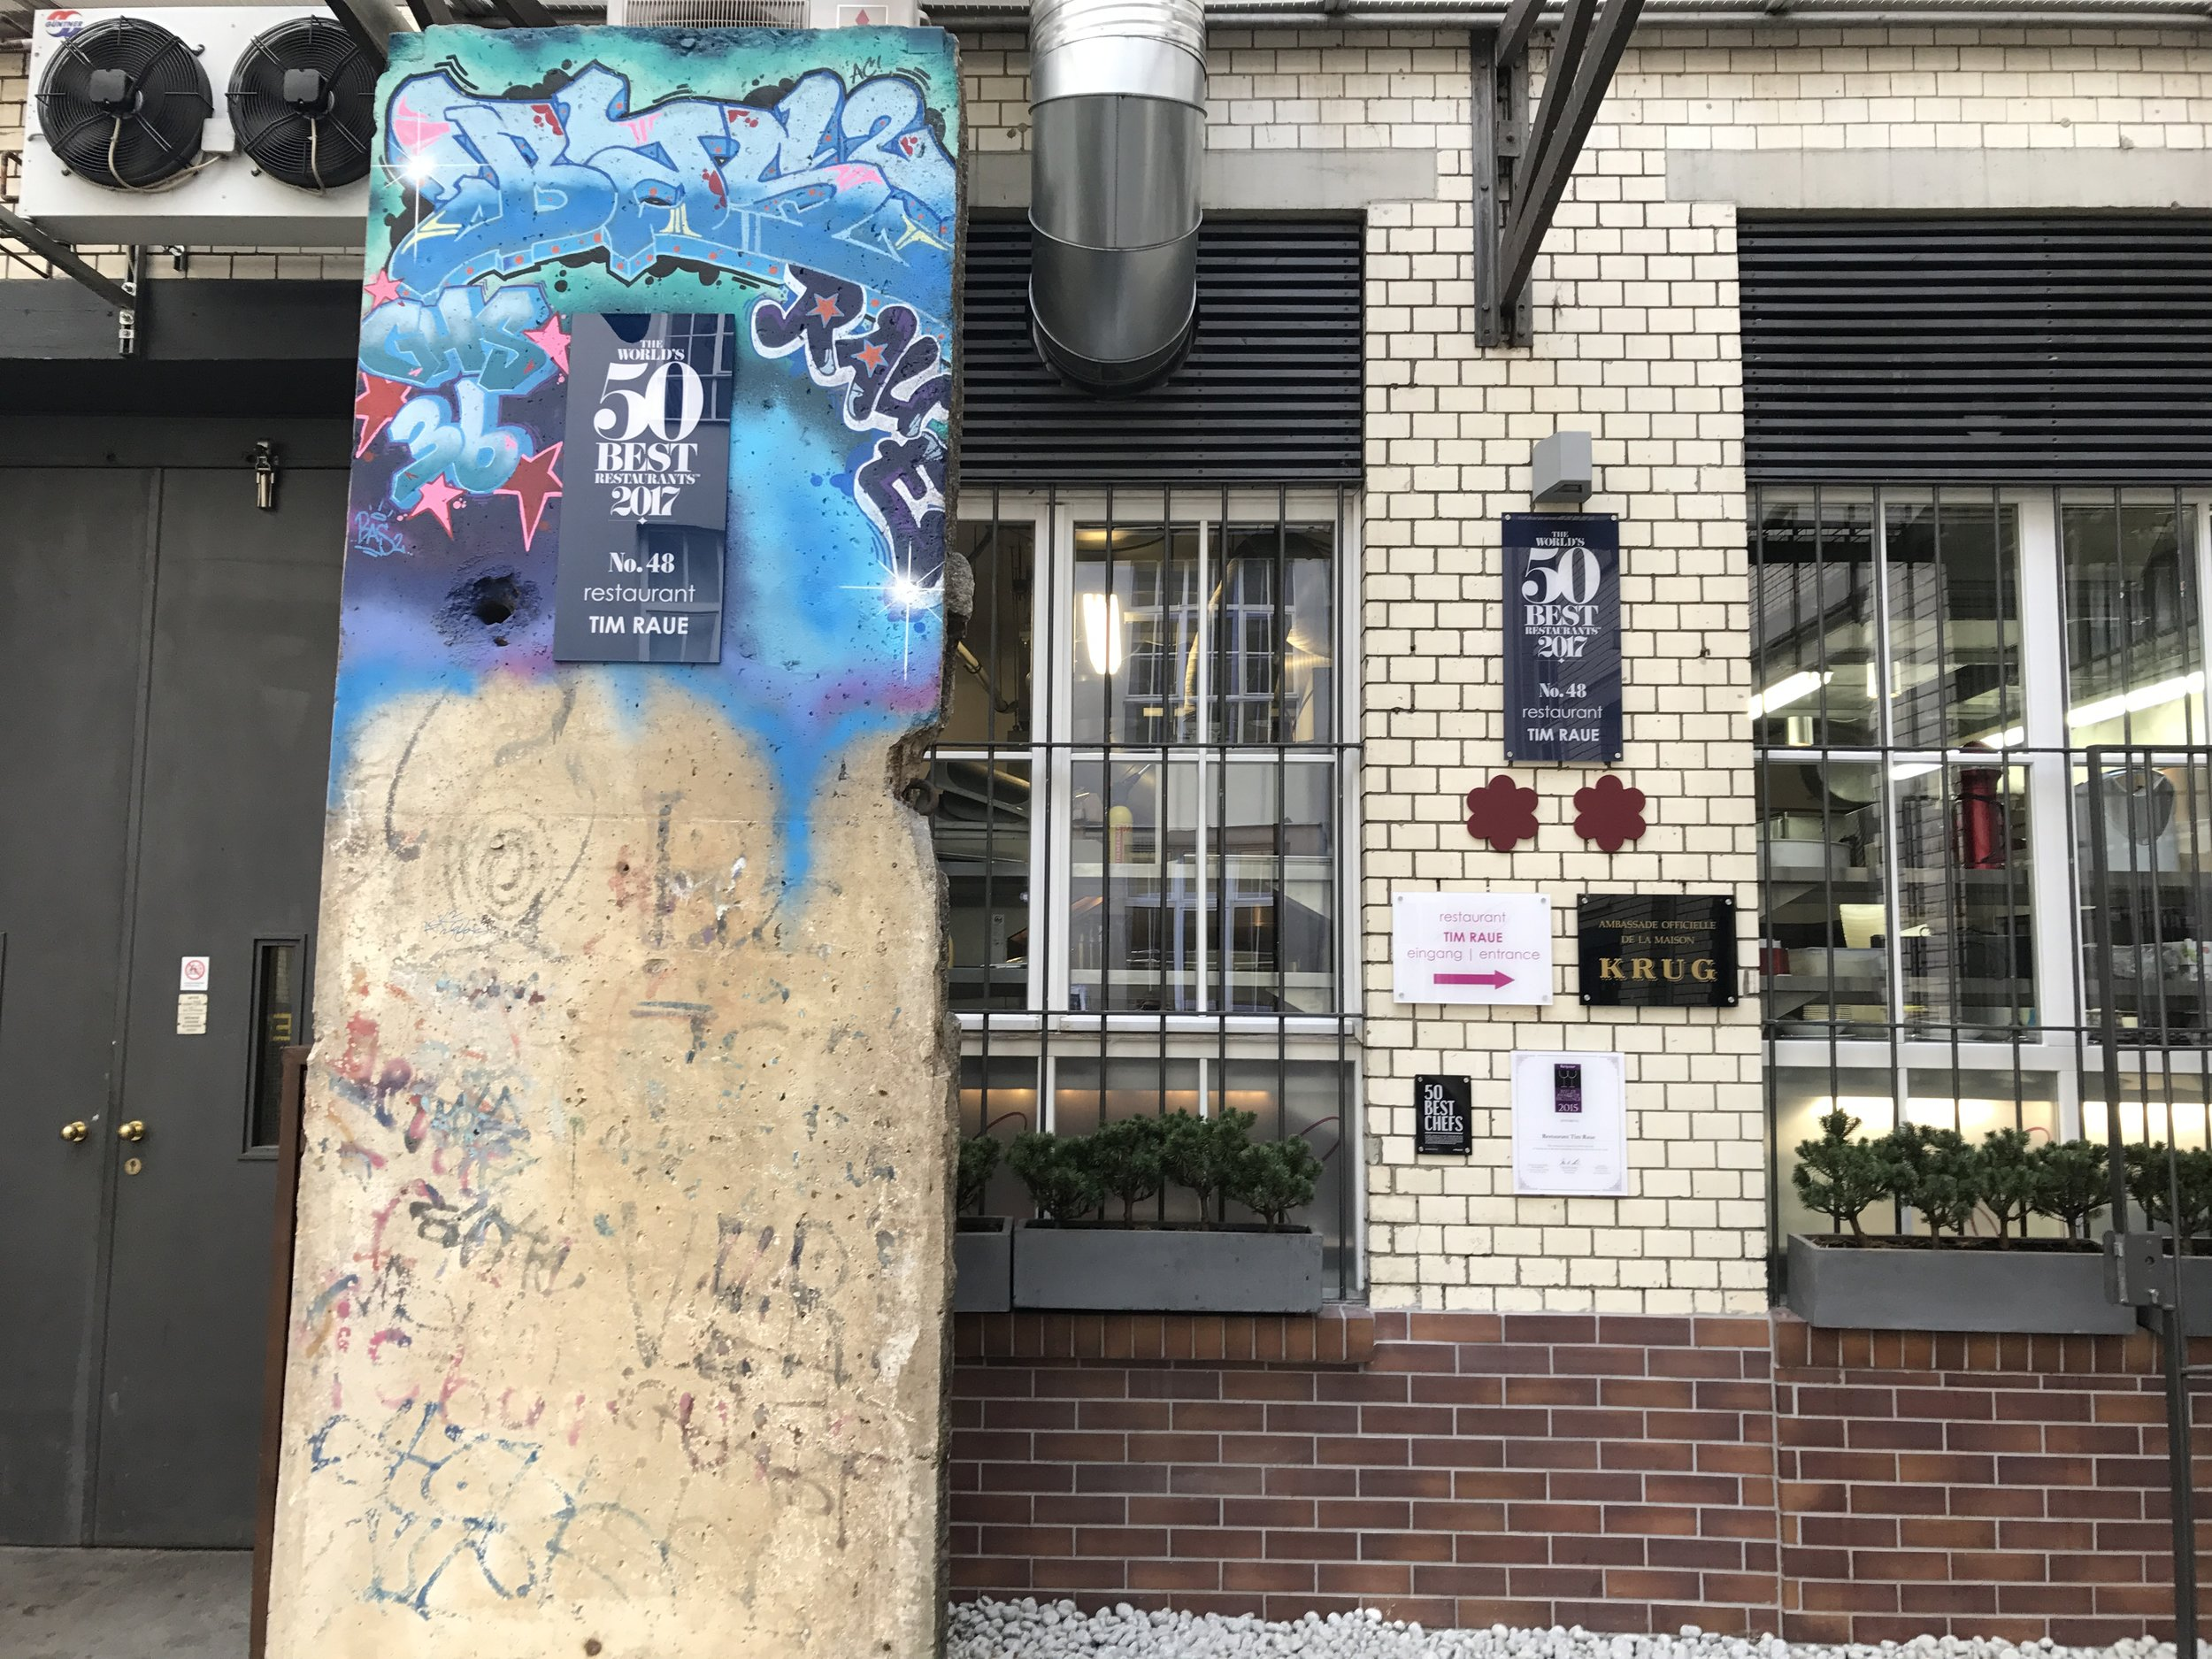 A block of the Berlin Wall is part of the decor